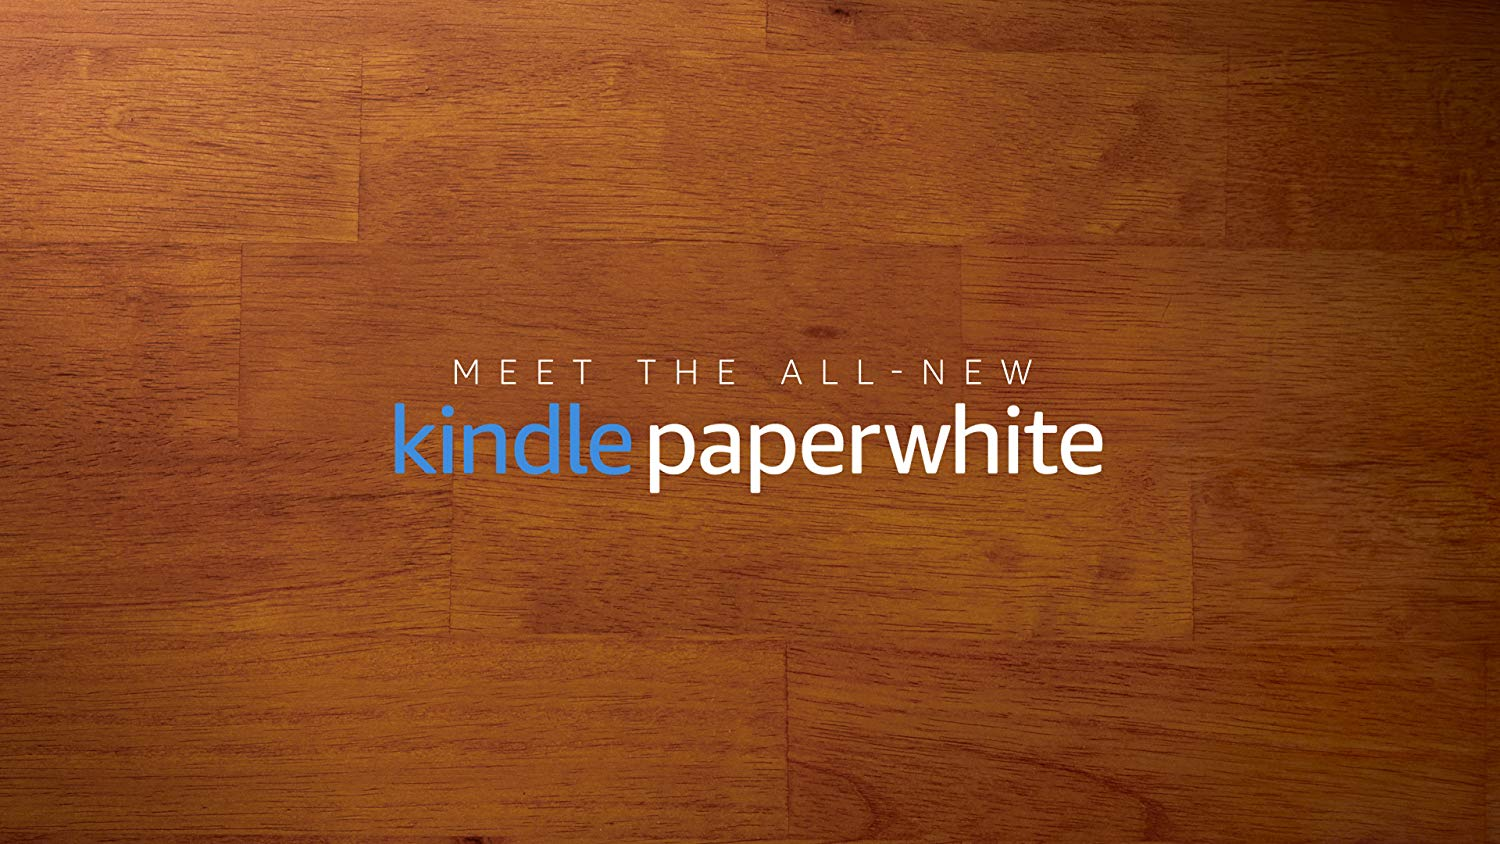 All-new Kindle Paperwhite – Now Waterproof with 2x the Storage